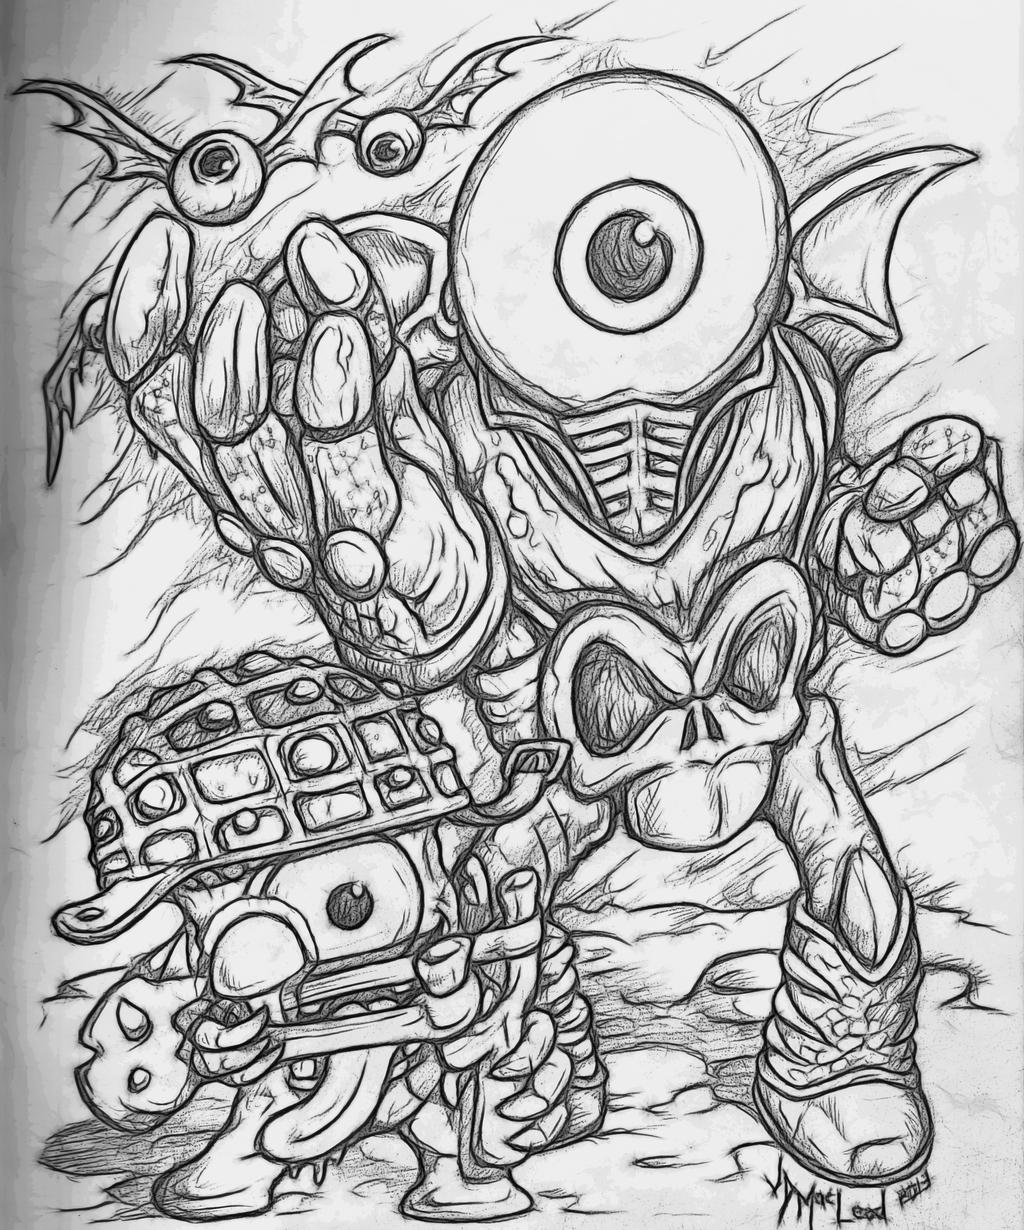 Not eyebrawl free colouring pages for Skylanders giants coloring pages eye brawl